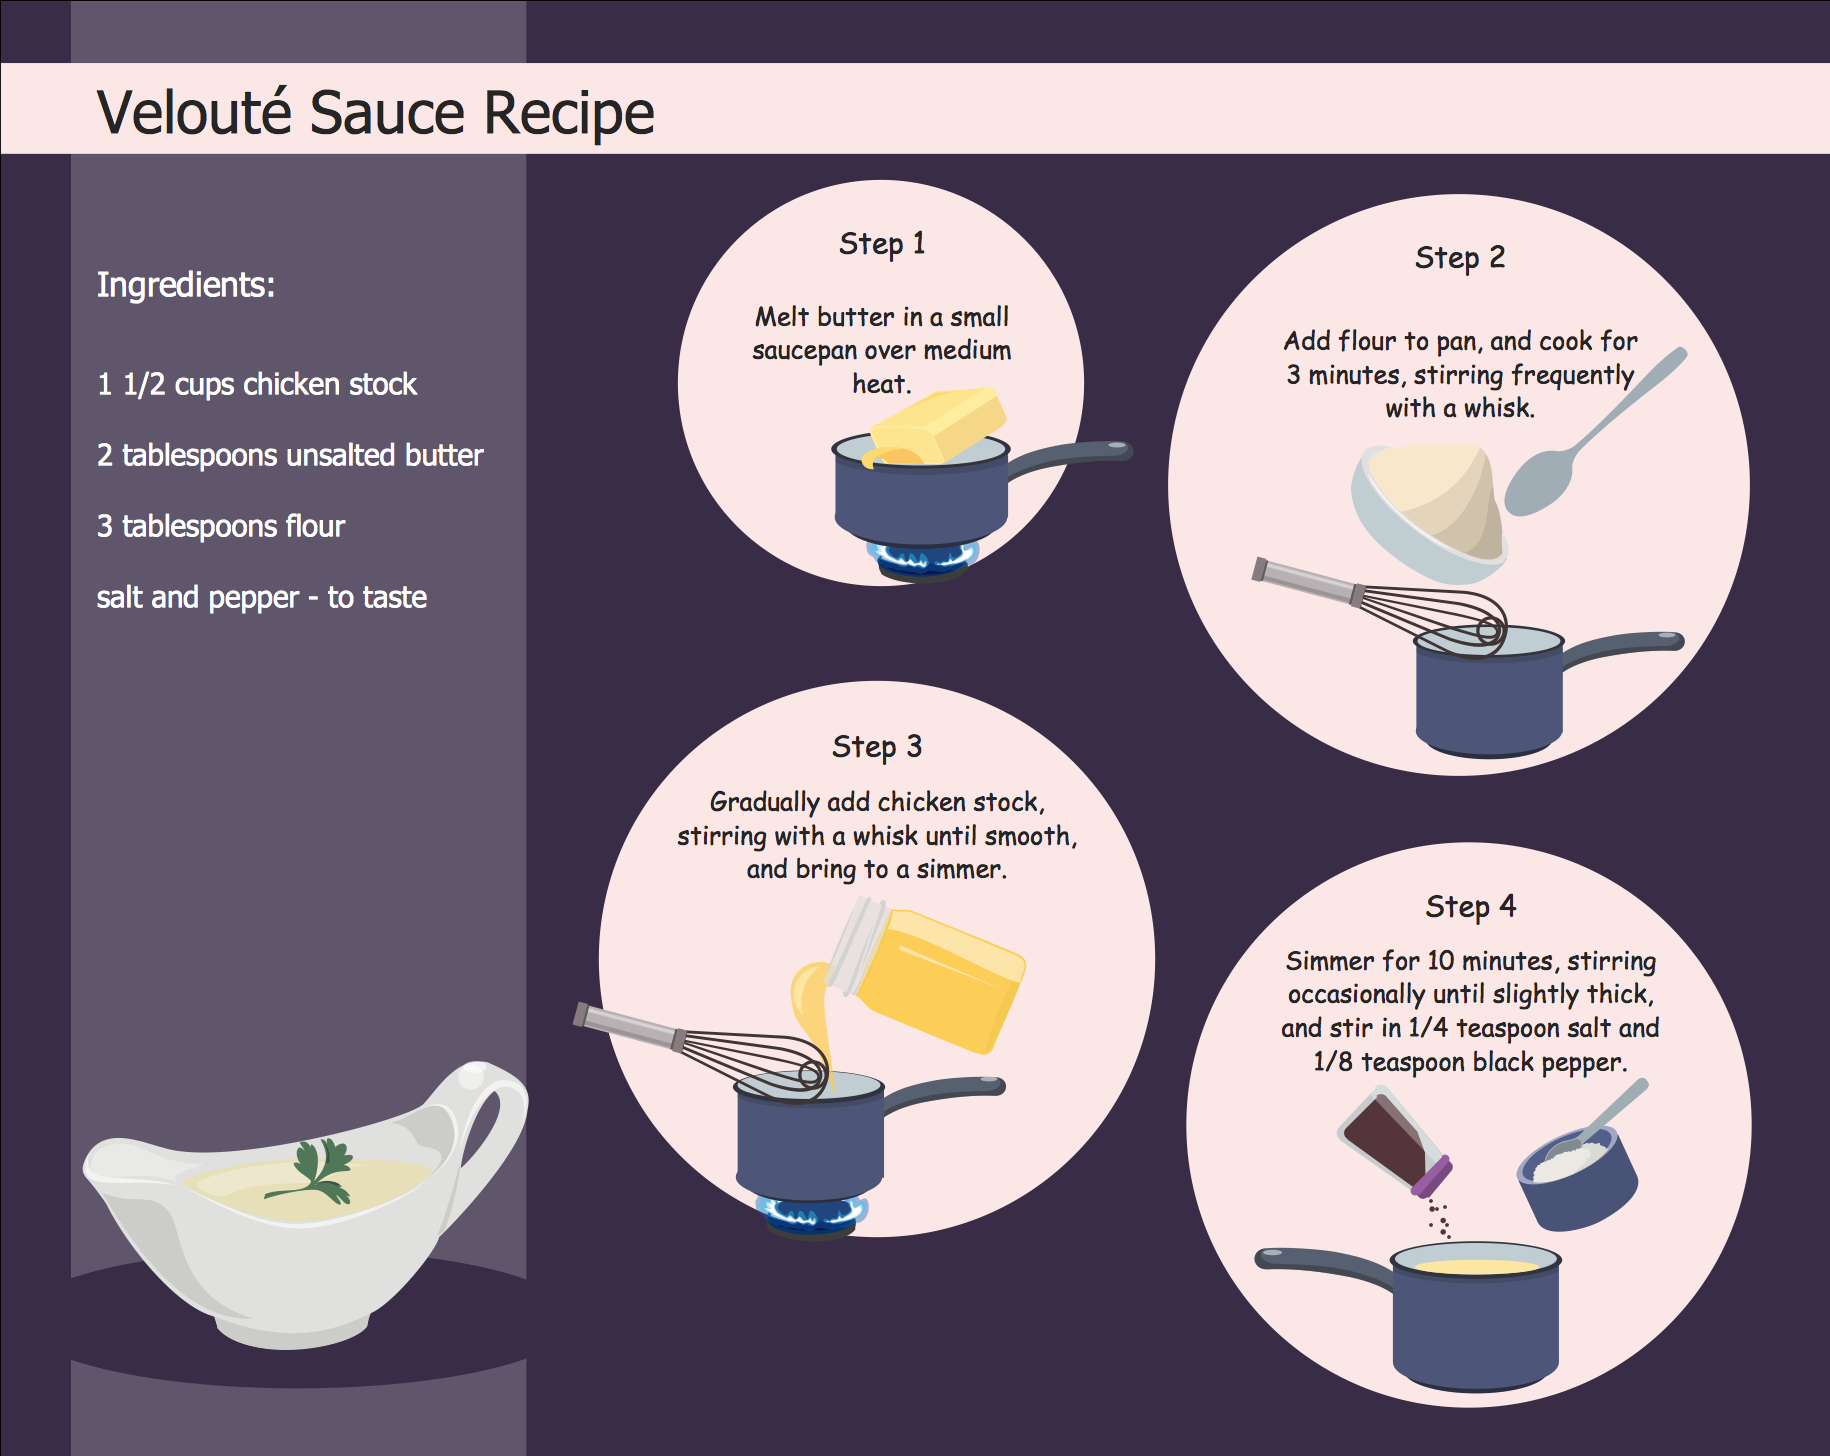 Easy Recipes - Veloute Sauce